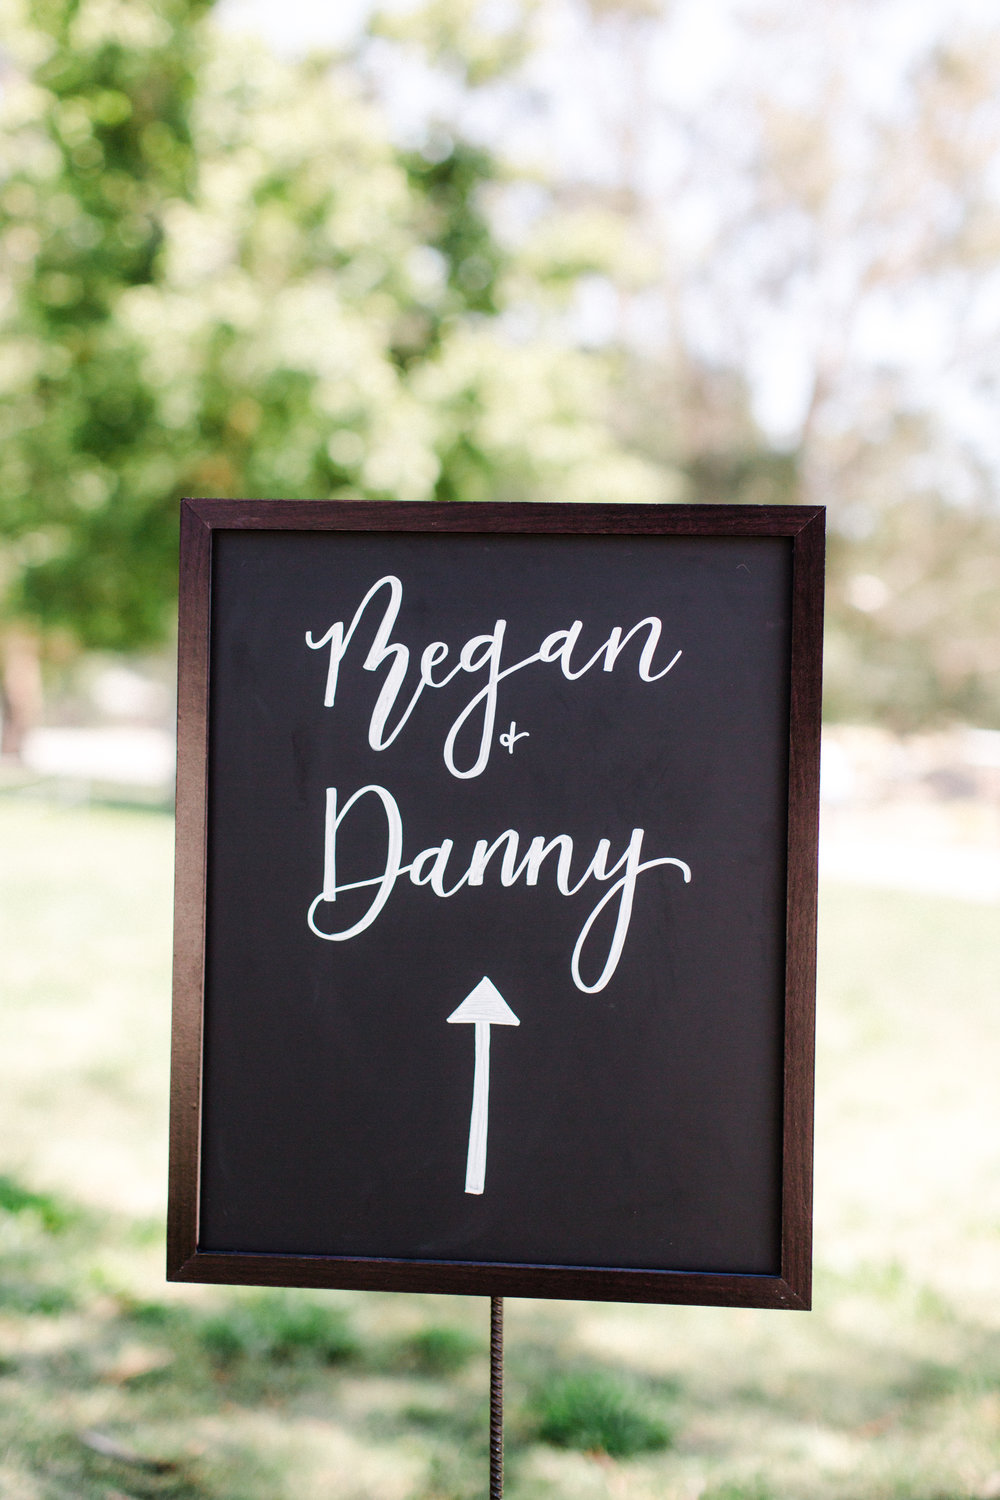 Temecula Winery Wedding | Anna Delores Photography | Pirouette Paper | Custom invitations, paper goods, signage and day of details | Galway Downs Wedding